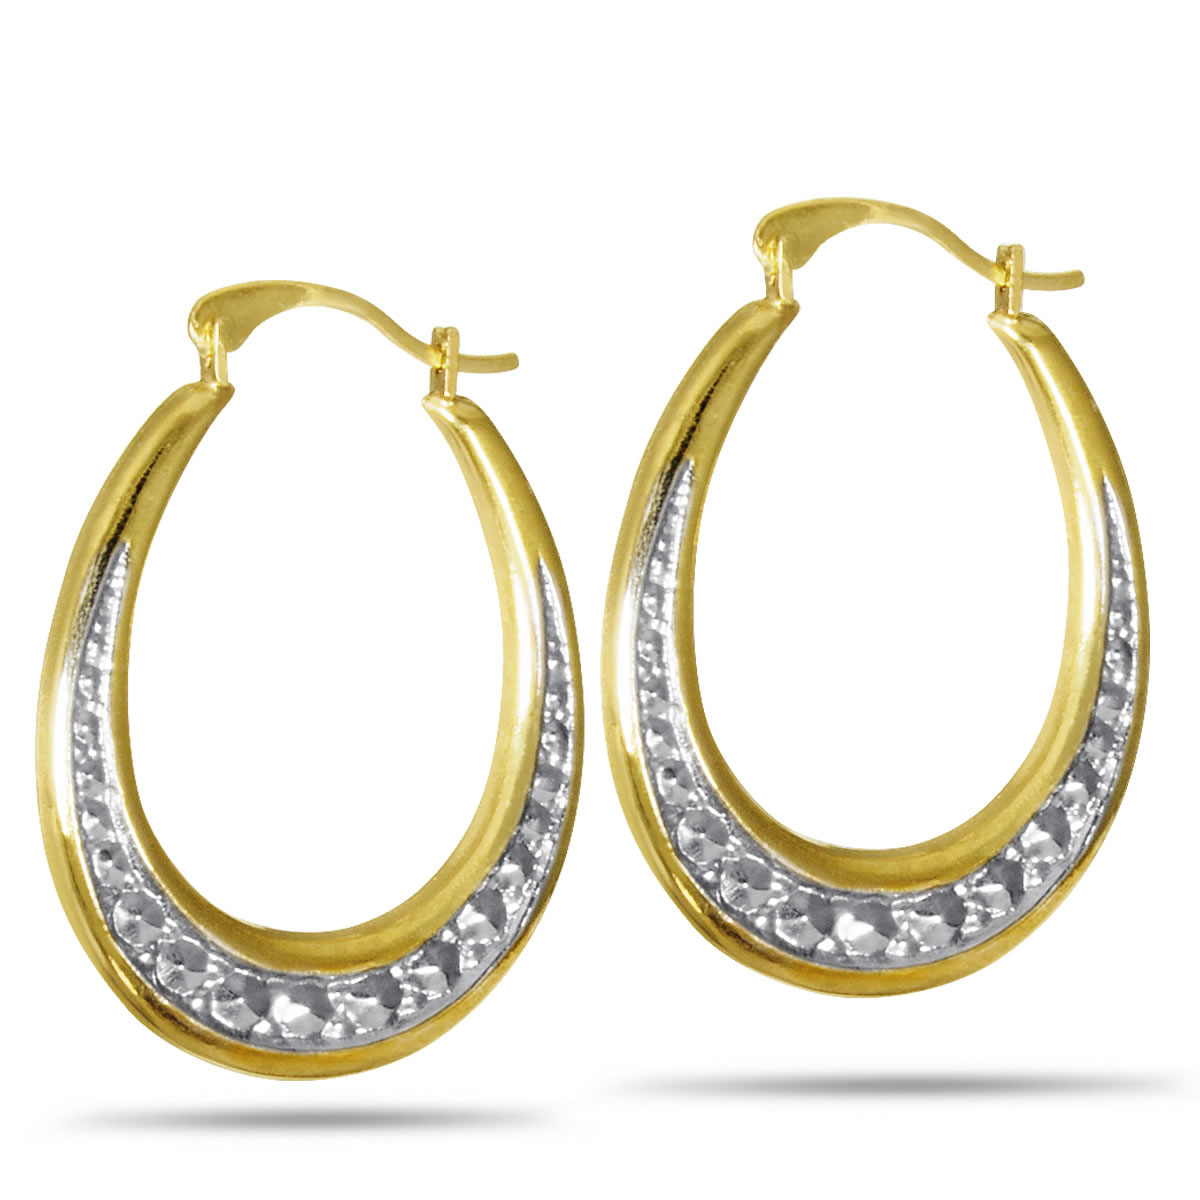 Gold Plated, Sterling Silver & Rhodium Beaded Creole Hoop Earrings